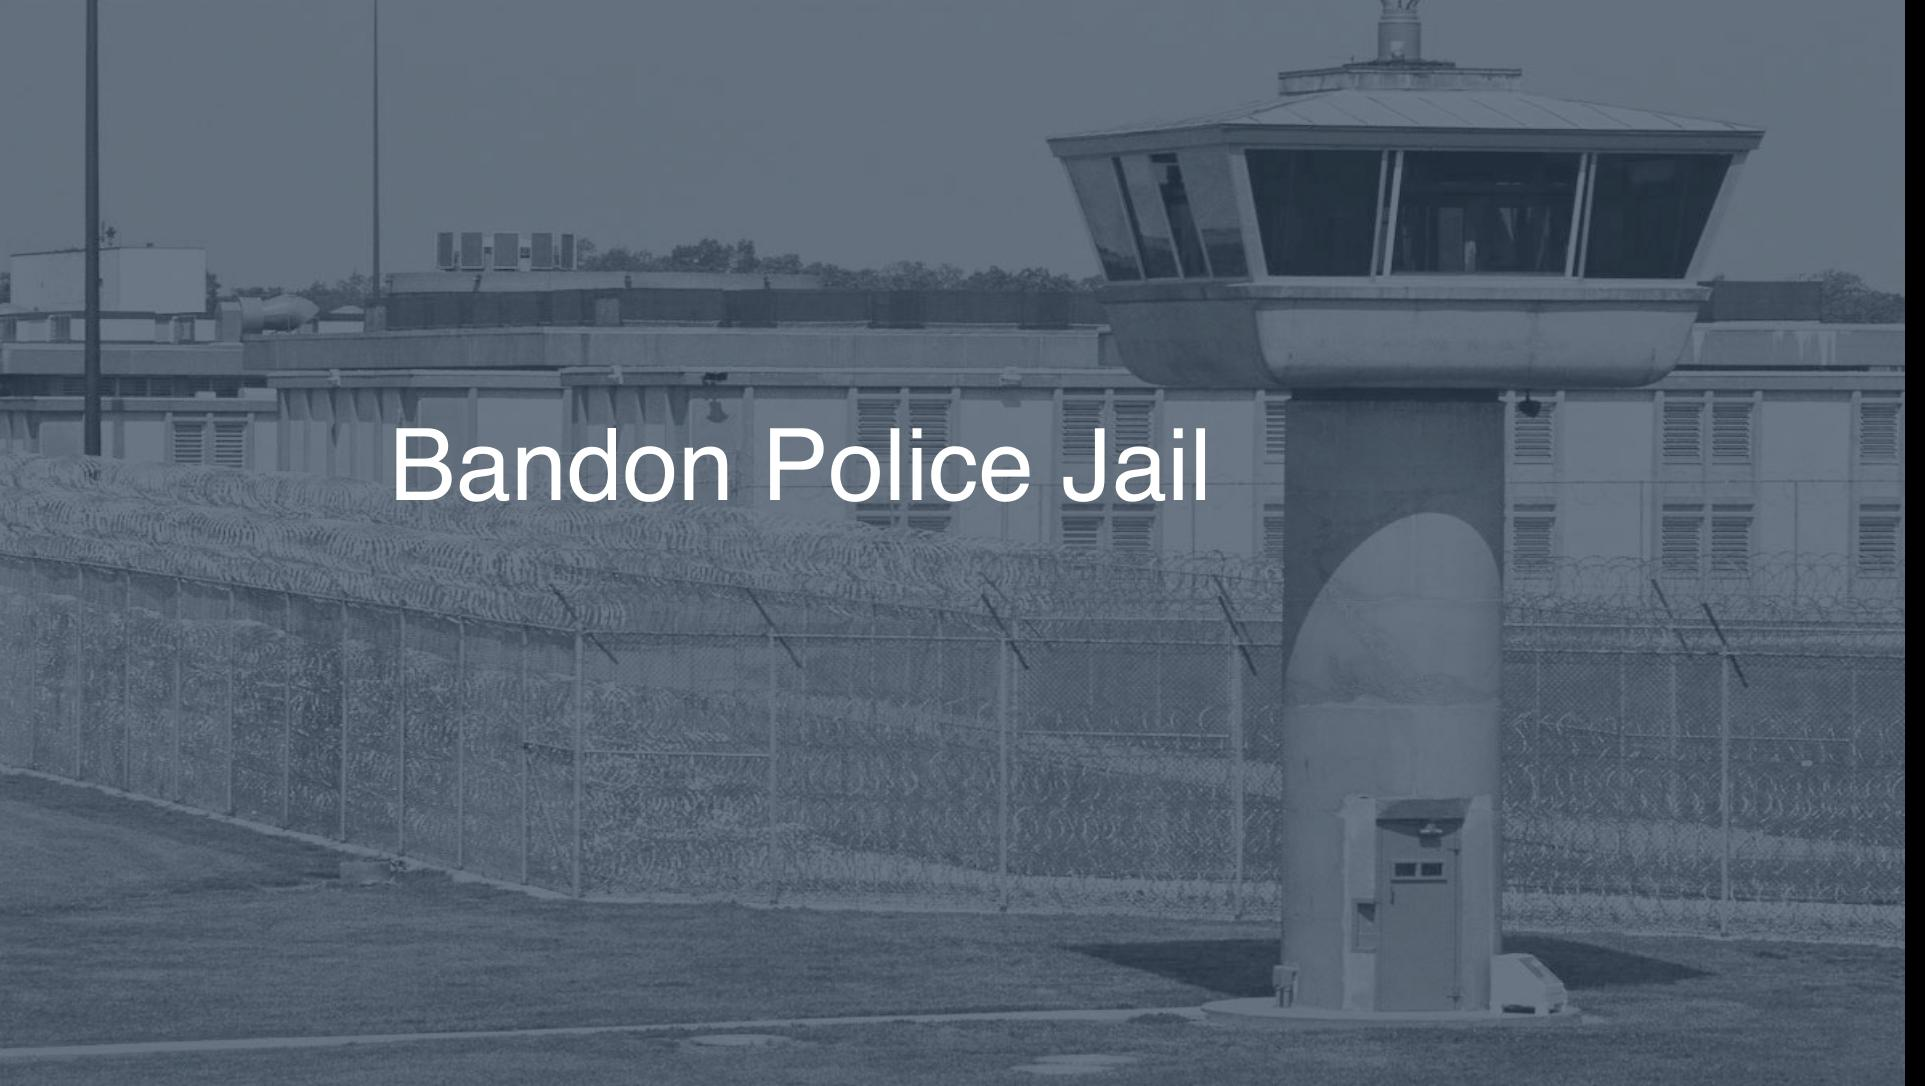 Bandon Police Jail correctional facility picture